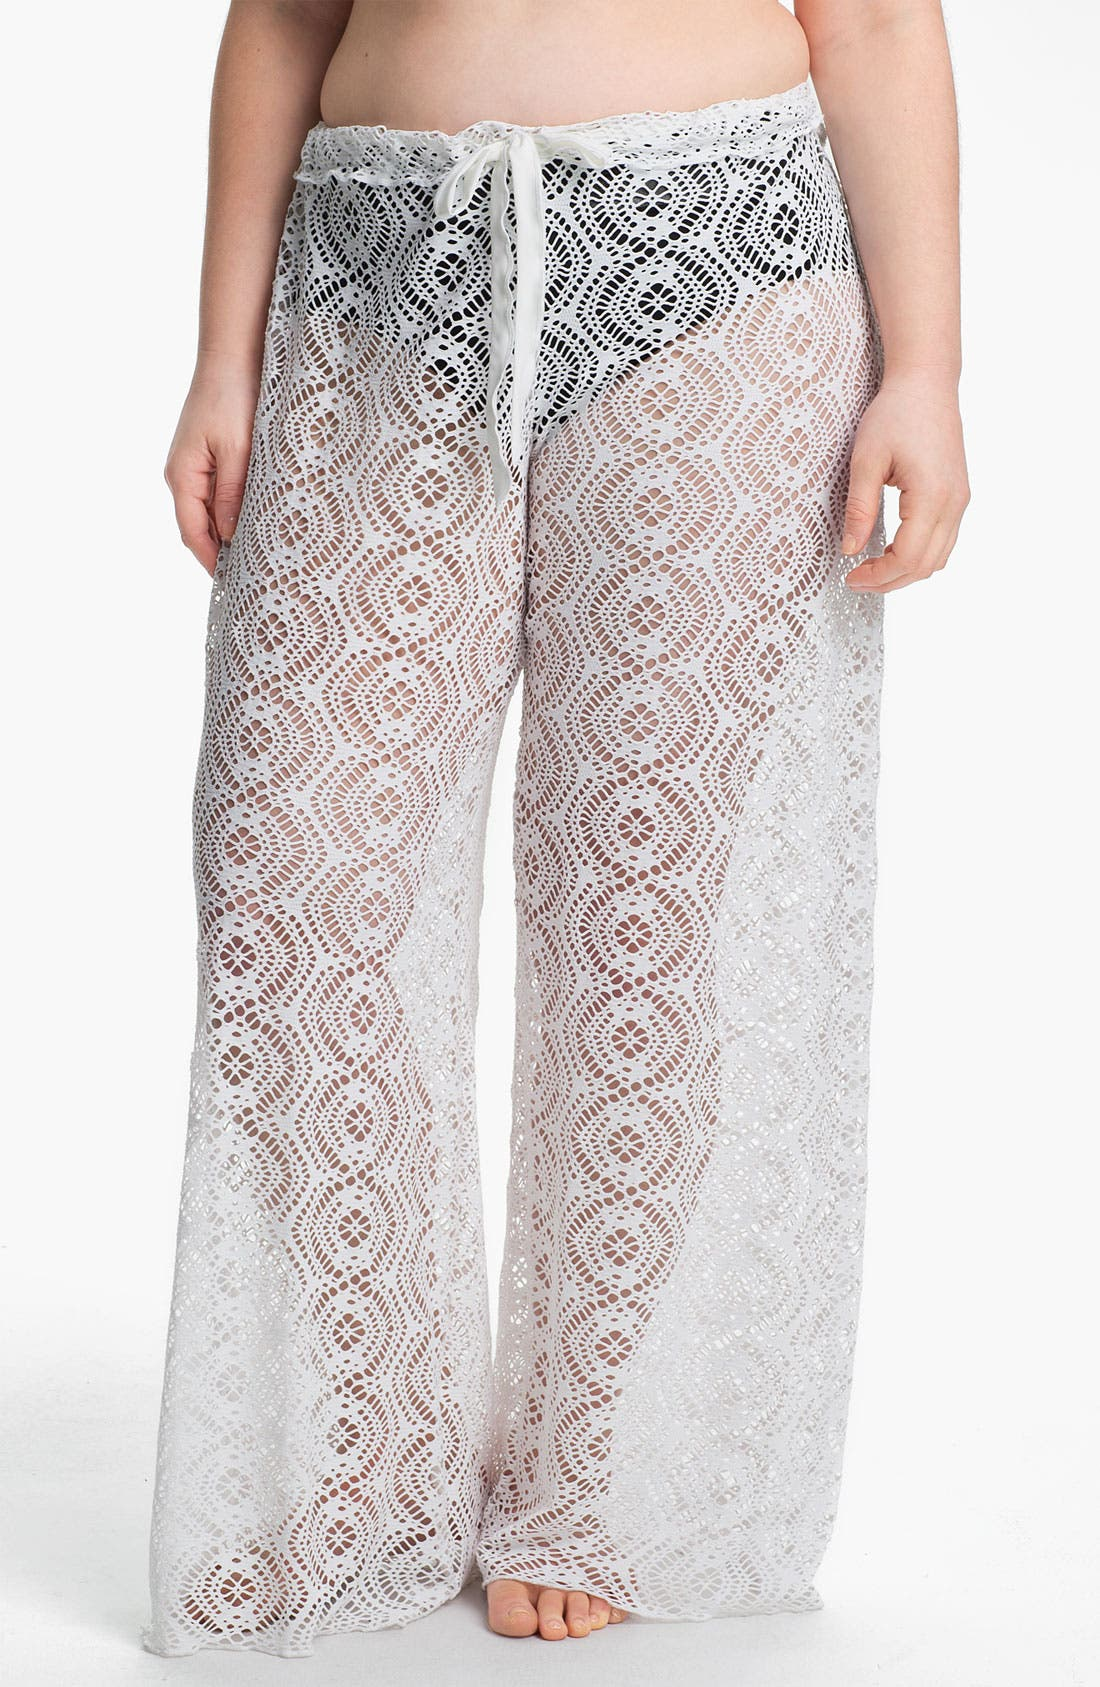 Main Image - Becca Etc. 'Marbella' Crochet Cover-Up Pants (Plus Size)